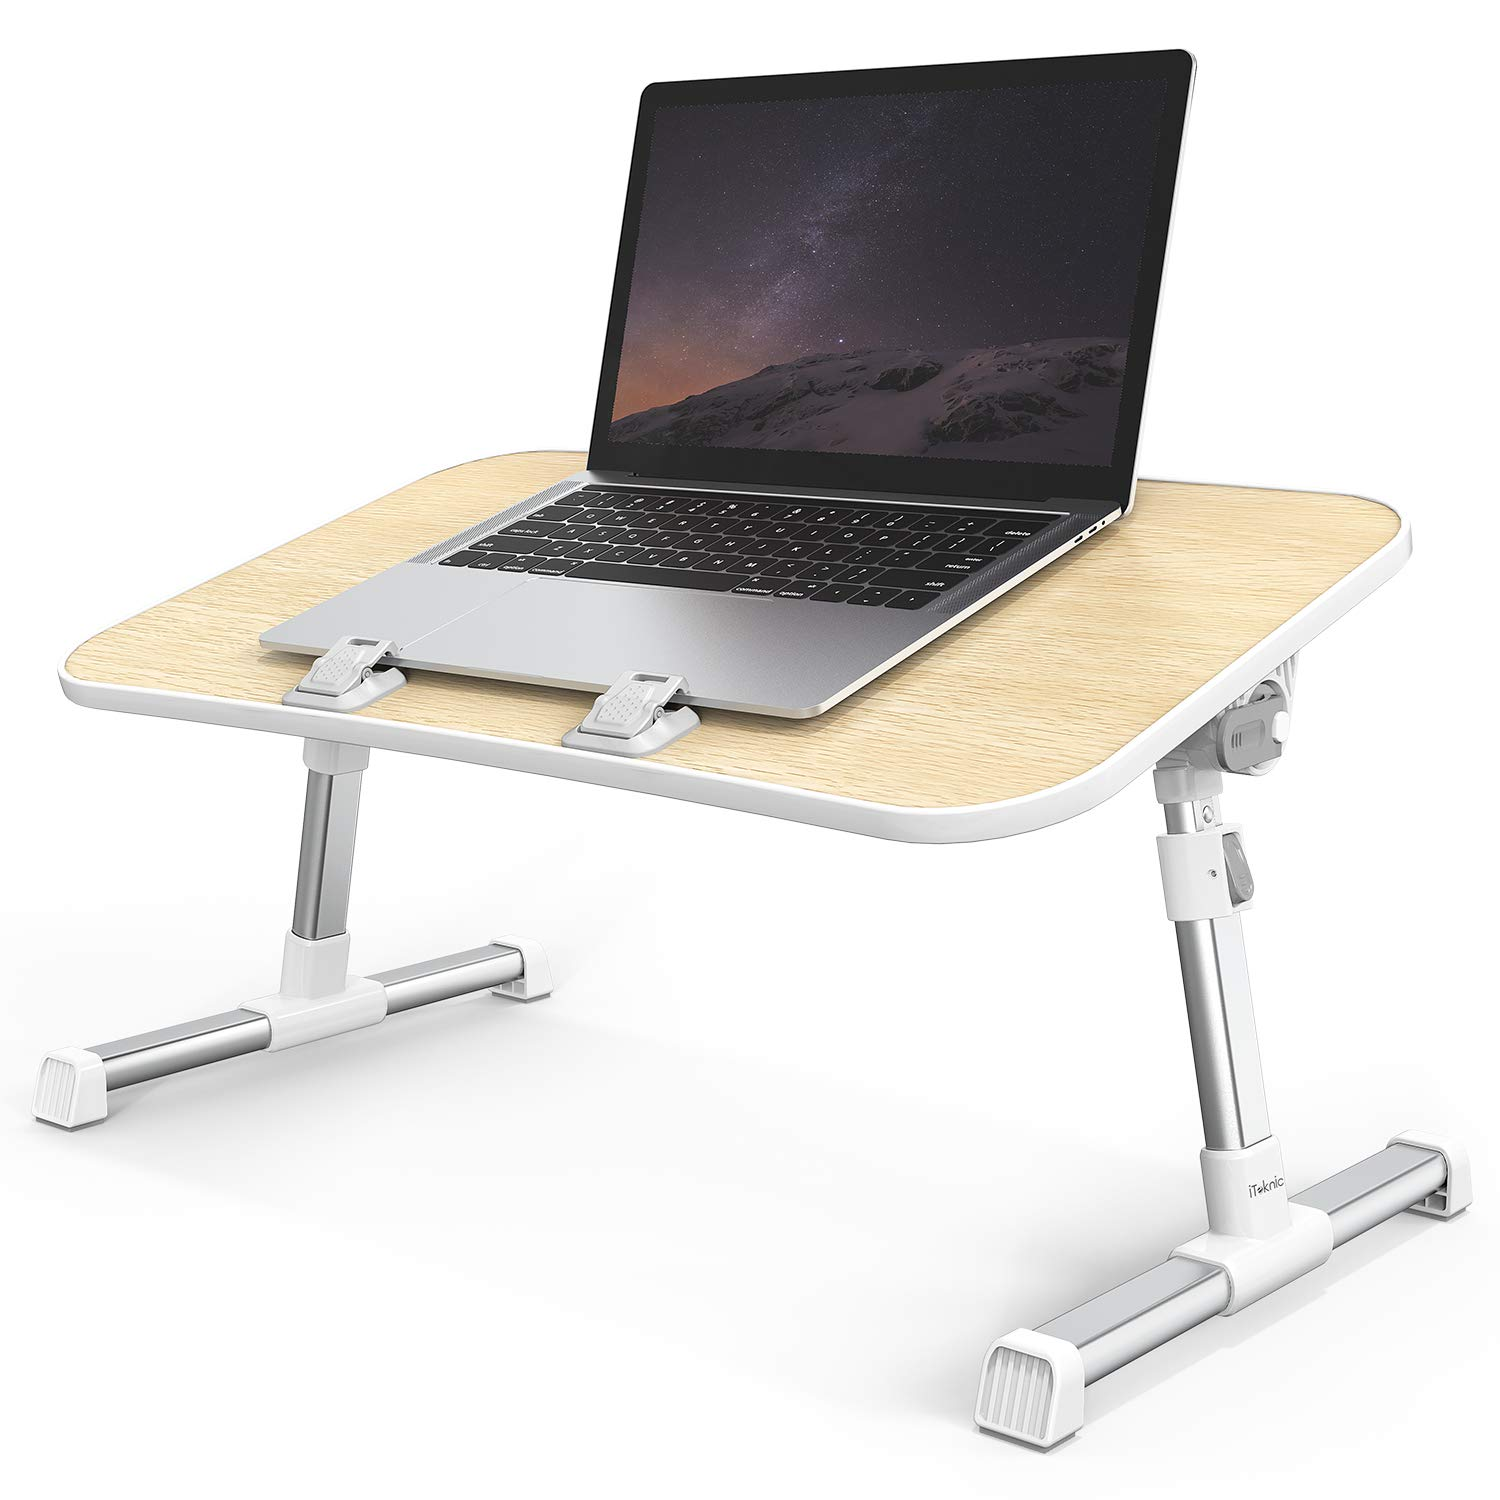 Laptop Desk, iTeknic Laptop Table, Adjustable Laptop Bed Tray, Foldable Laptop Bed Table, Portable Laptop Bed Stand for Sofa, Bed, Couch, Floor, Car by iTeknic